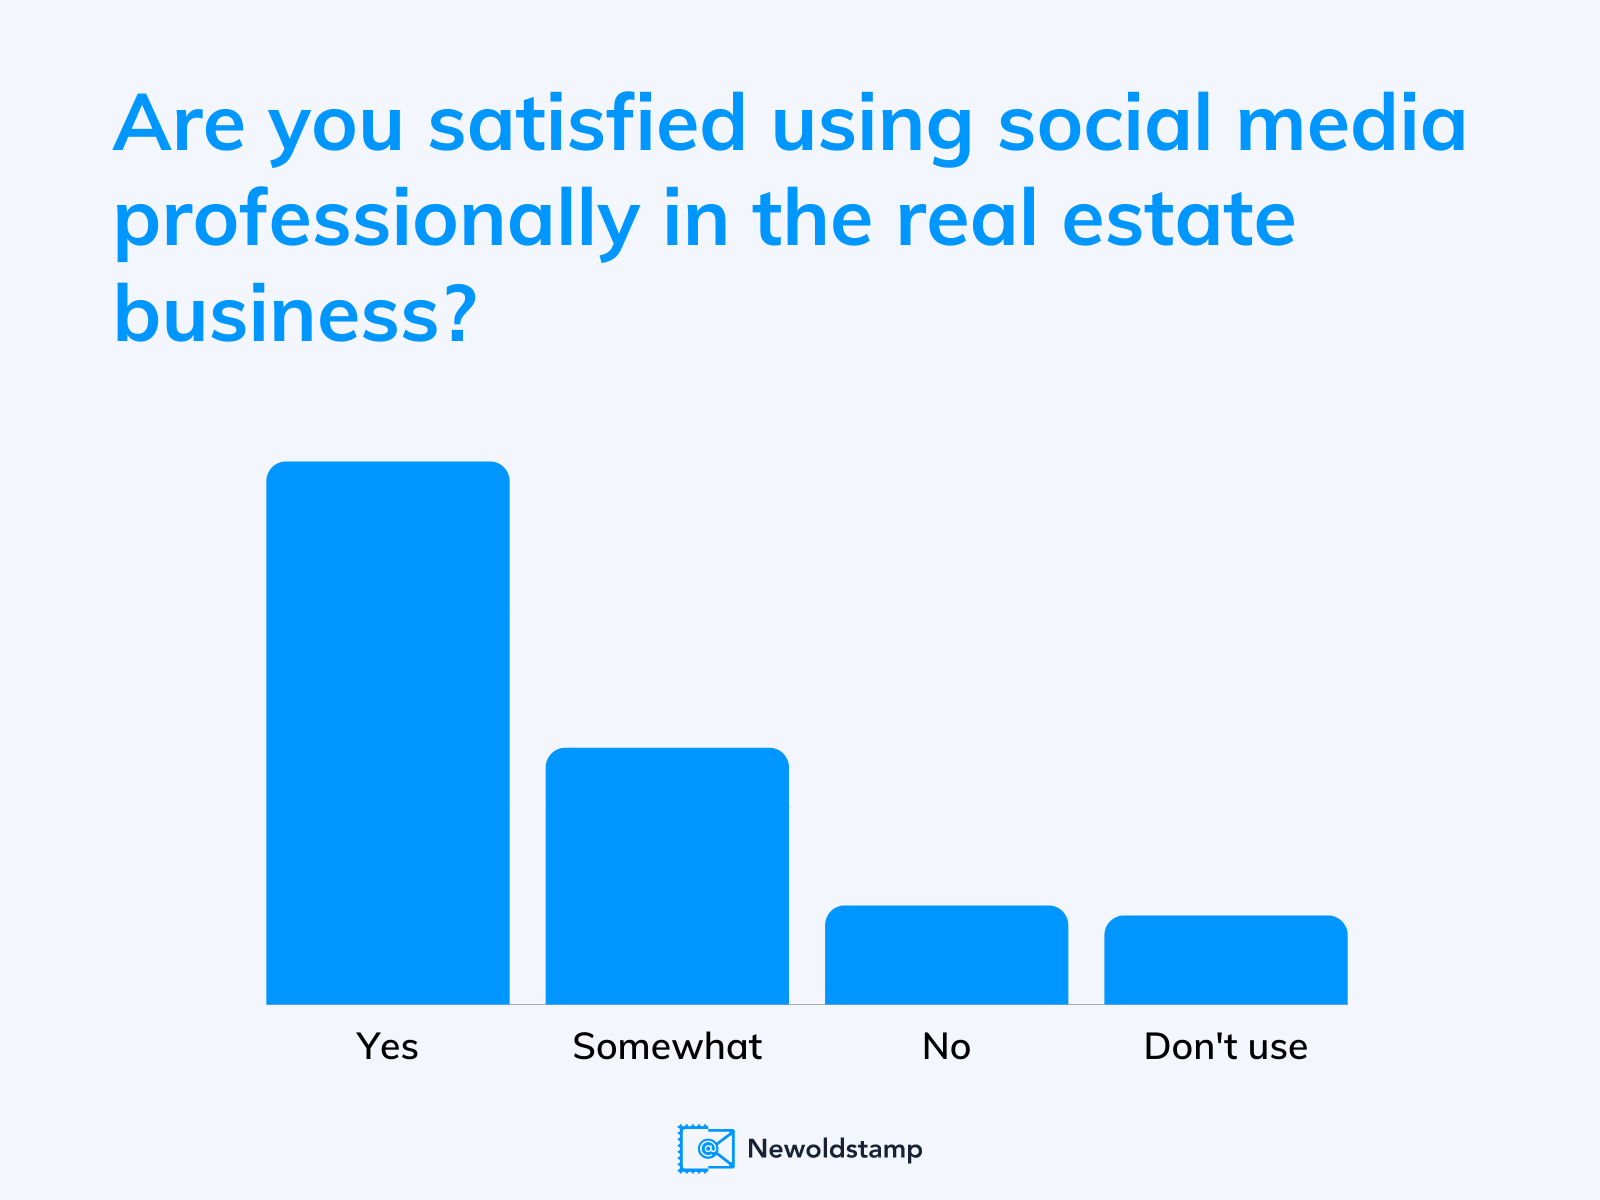 How satisfied realtors are with social media